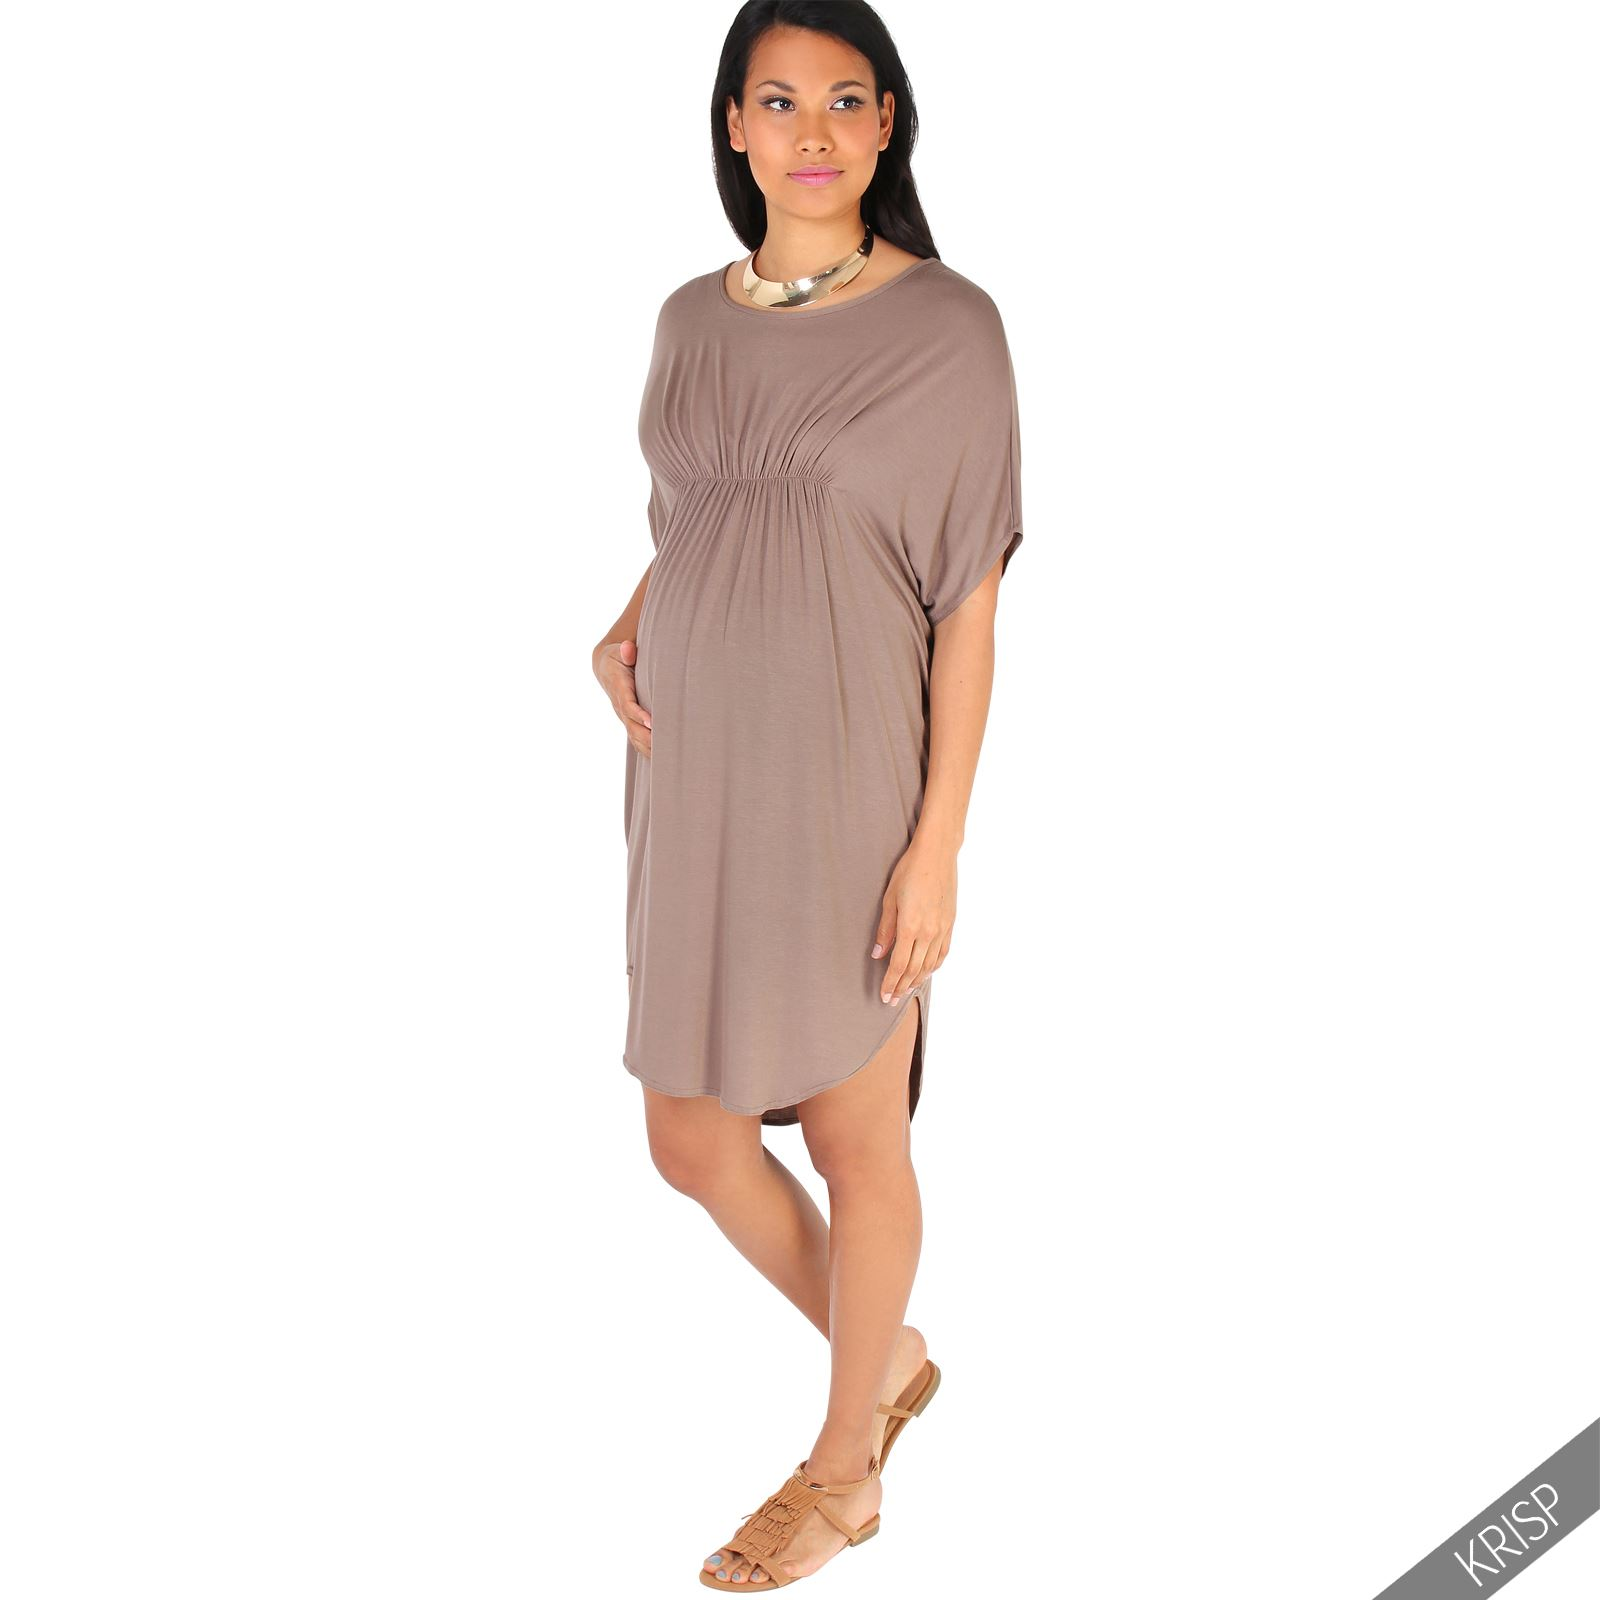 Maternity Womens Empire Line Short Sleeve Top Long Loose T